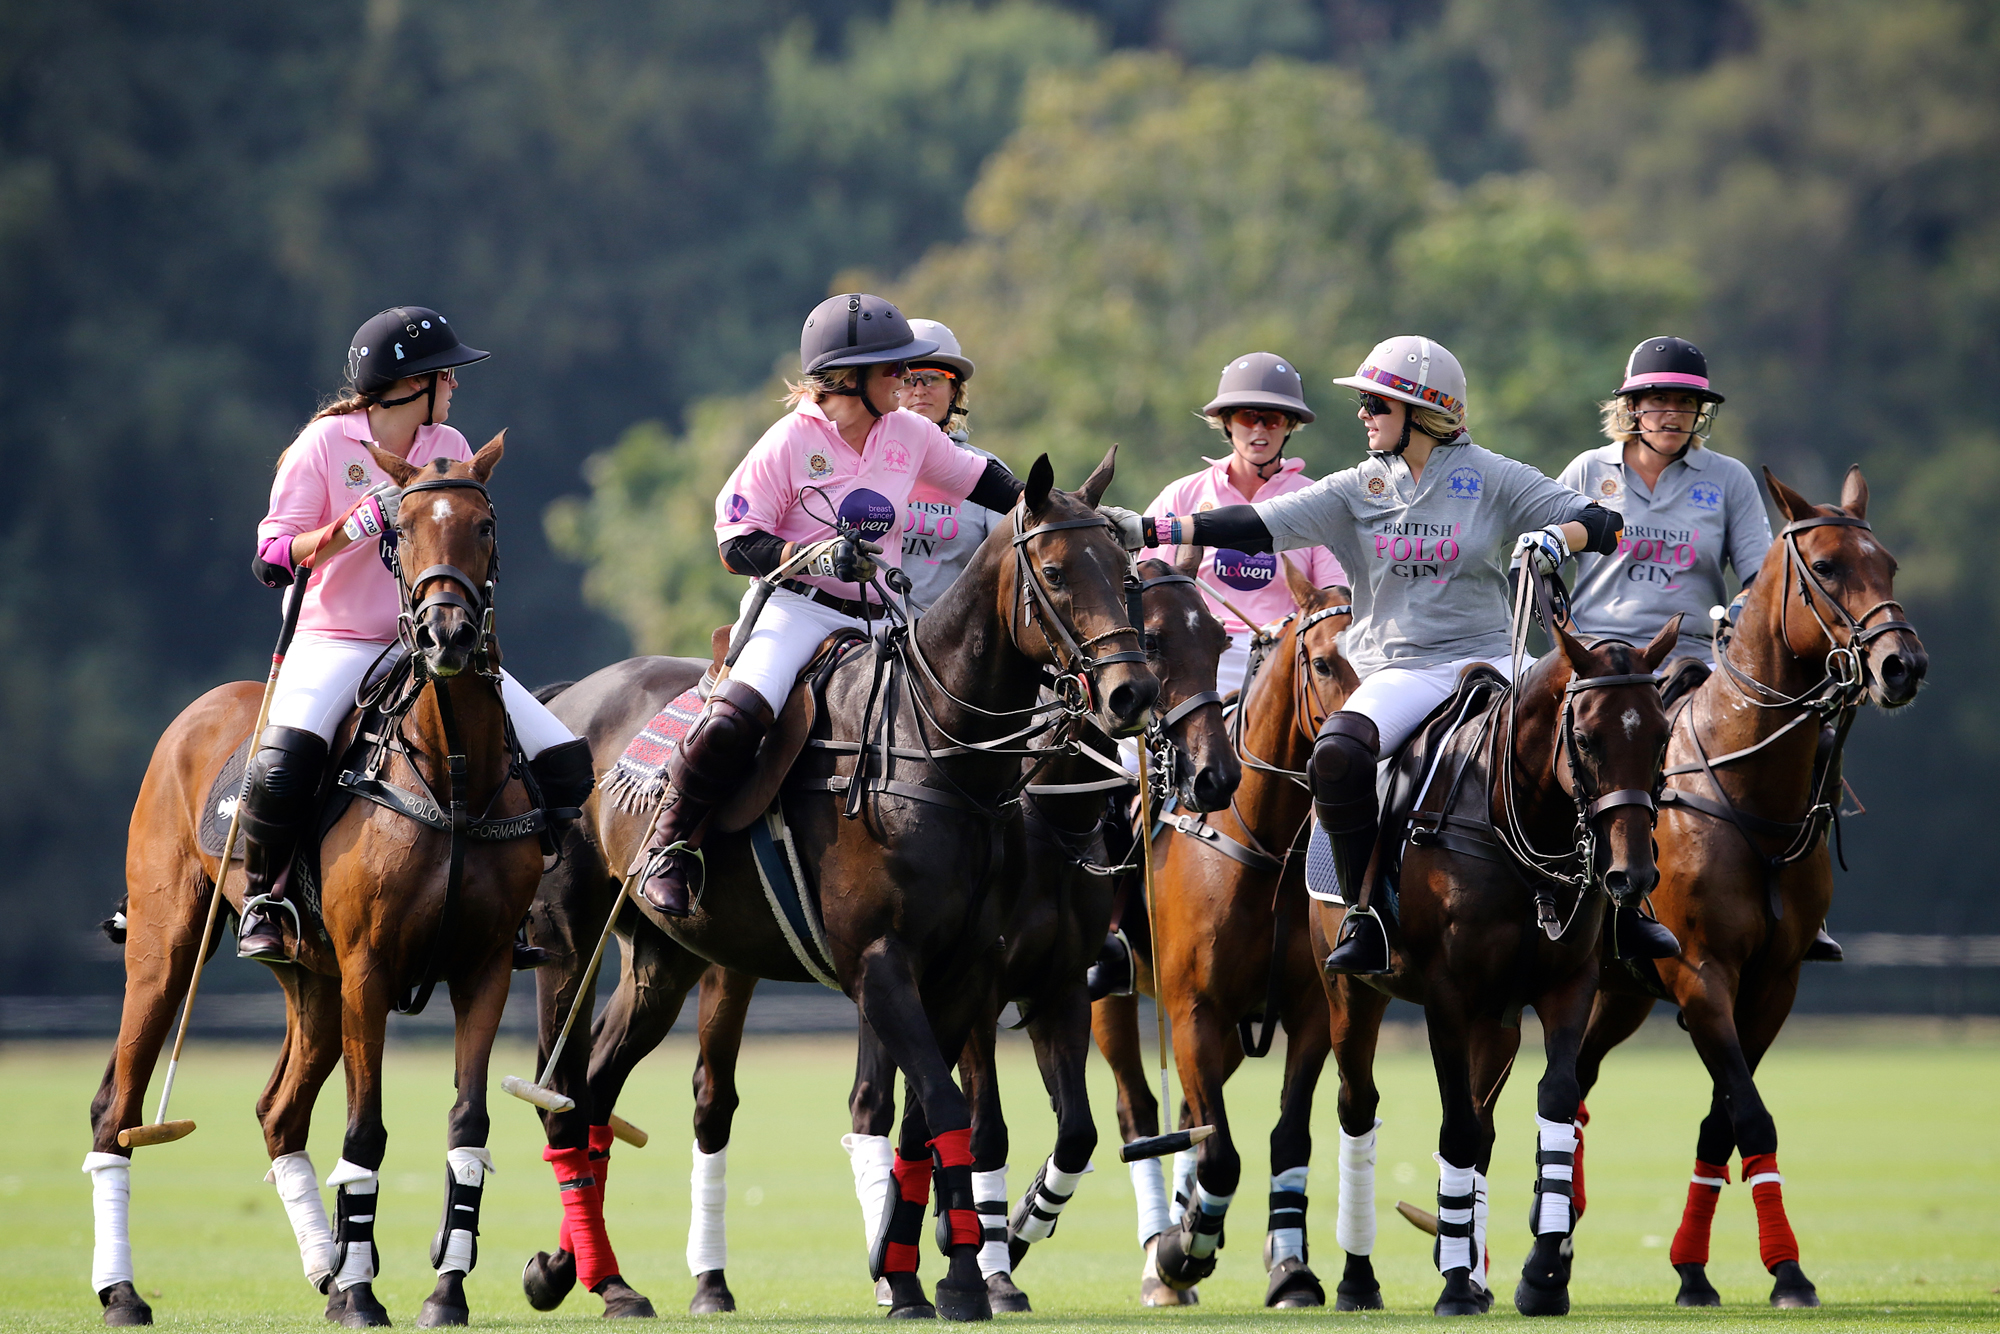 Guards Polo Club Develops Ladies Charity Day Polo The